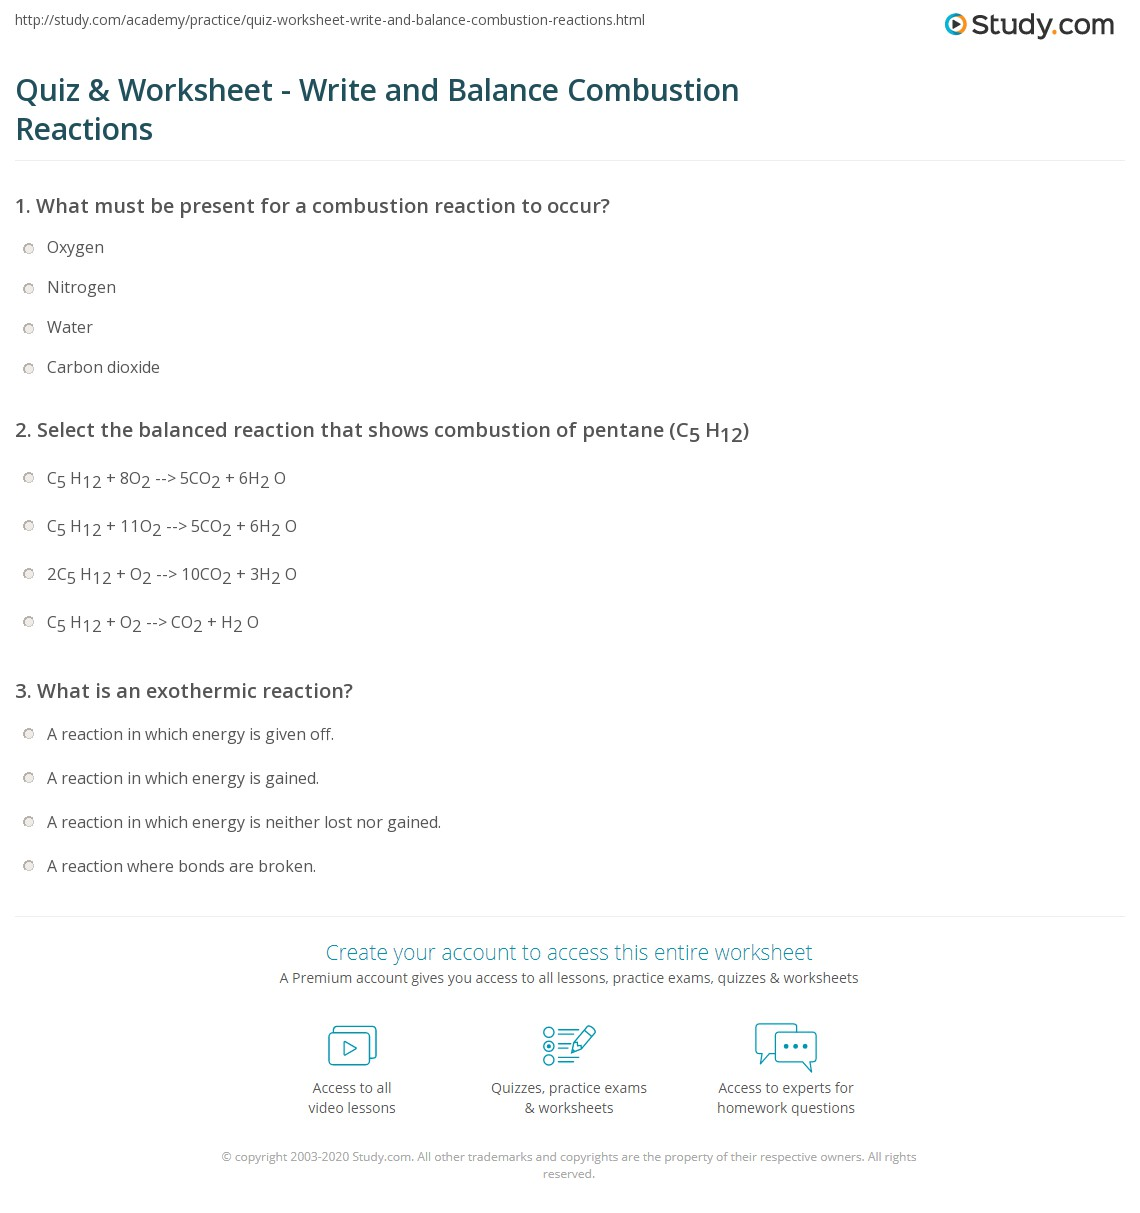 Quiz & Worksheet - Write and Balance Combustion Reactions | Study.com